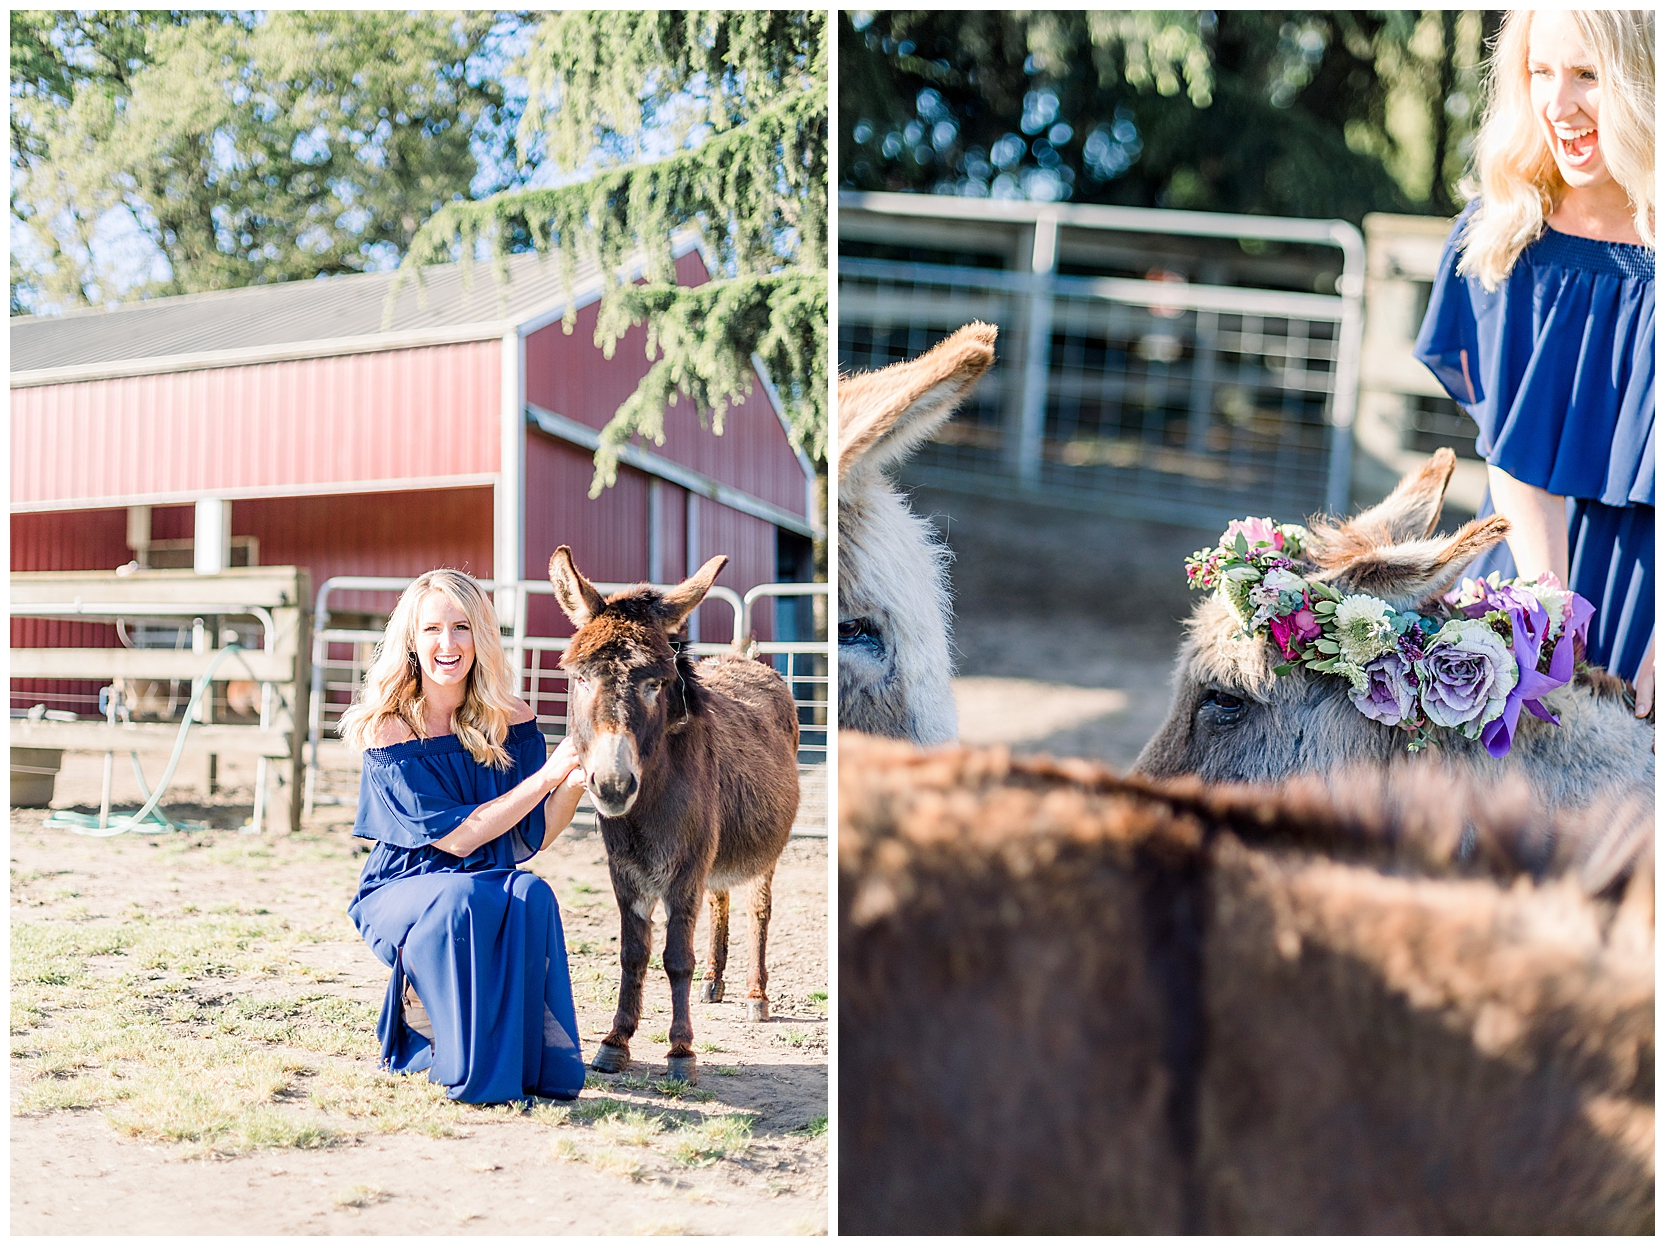 jessicafredericks_st petersburg_wedding_photographer_bridesmaid_farm_donkey_flower crown_inspo_0001.jpg